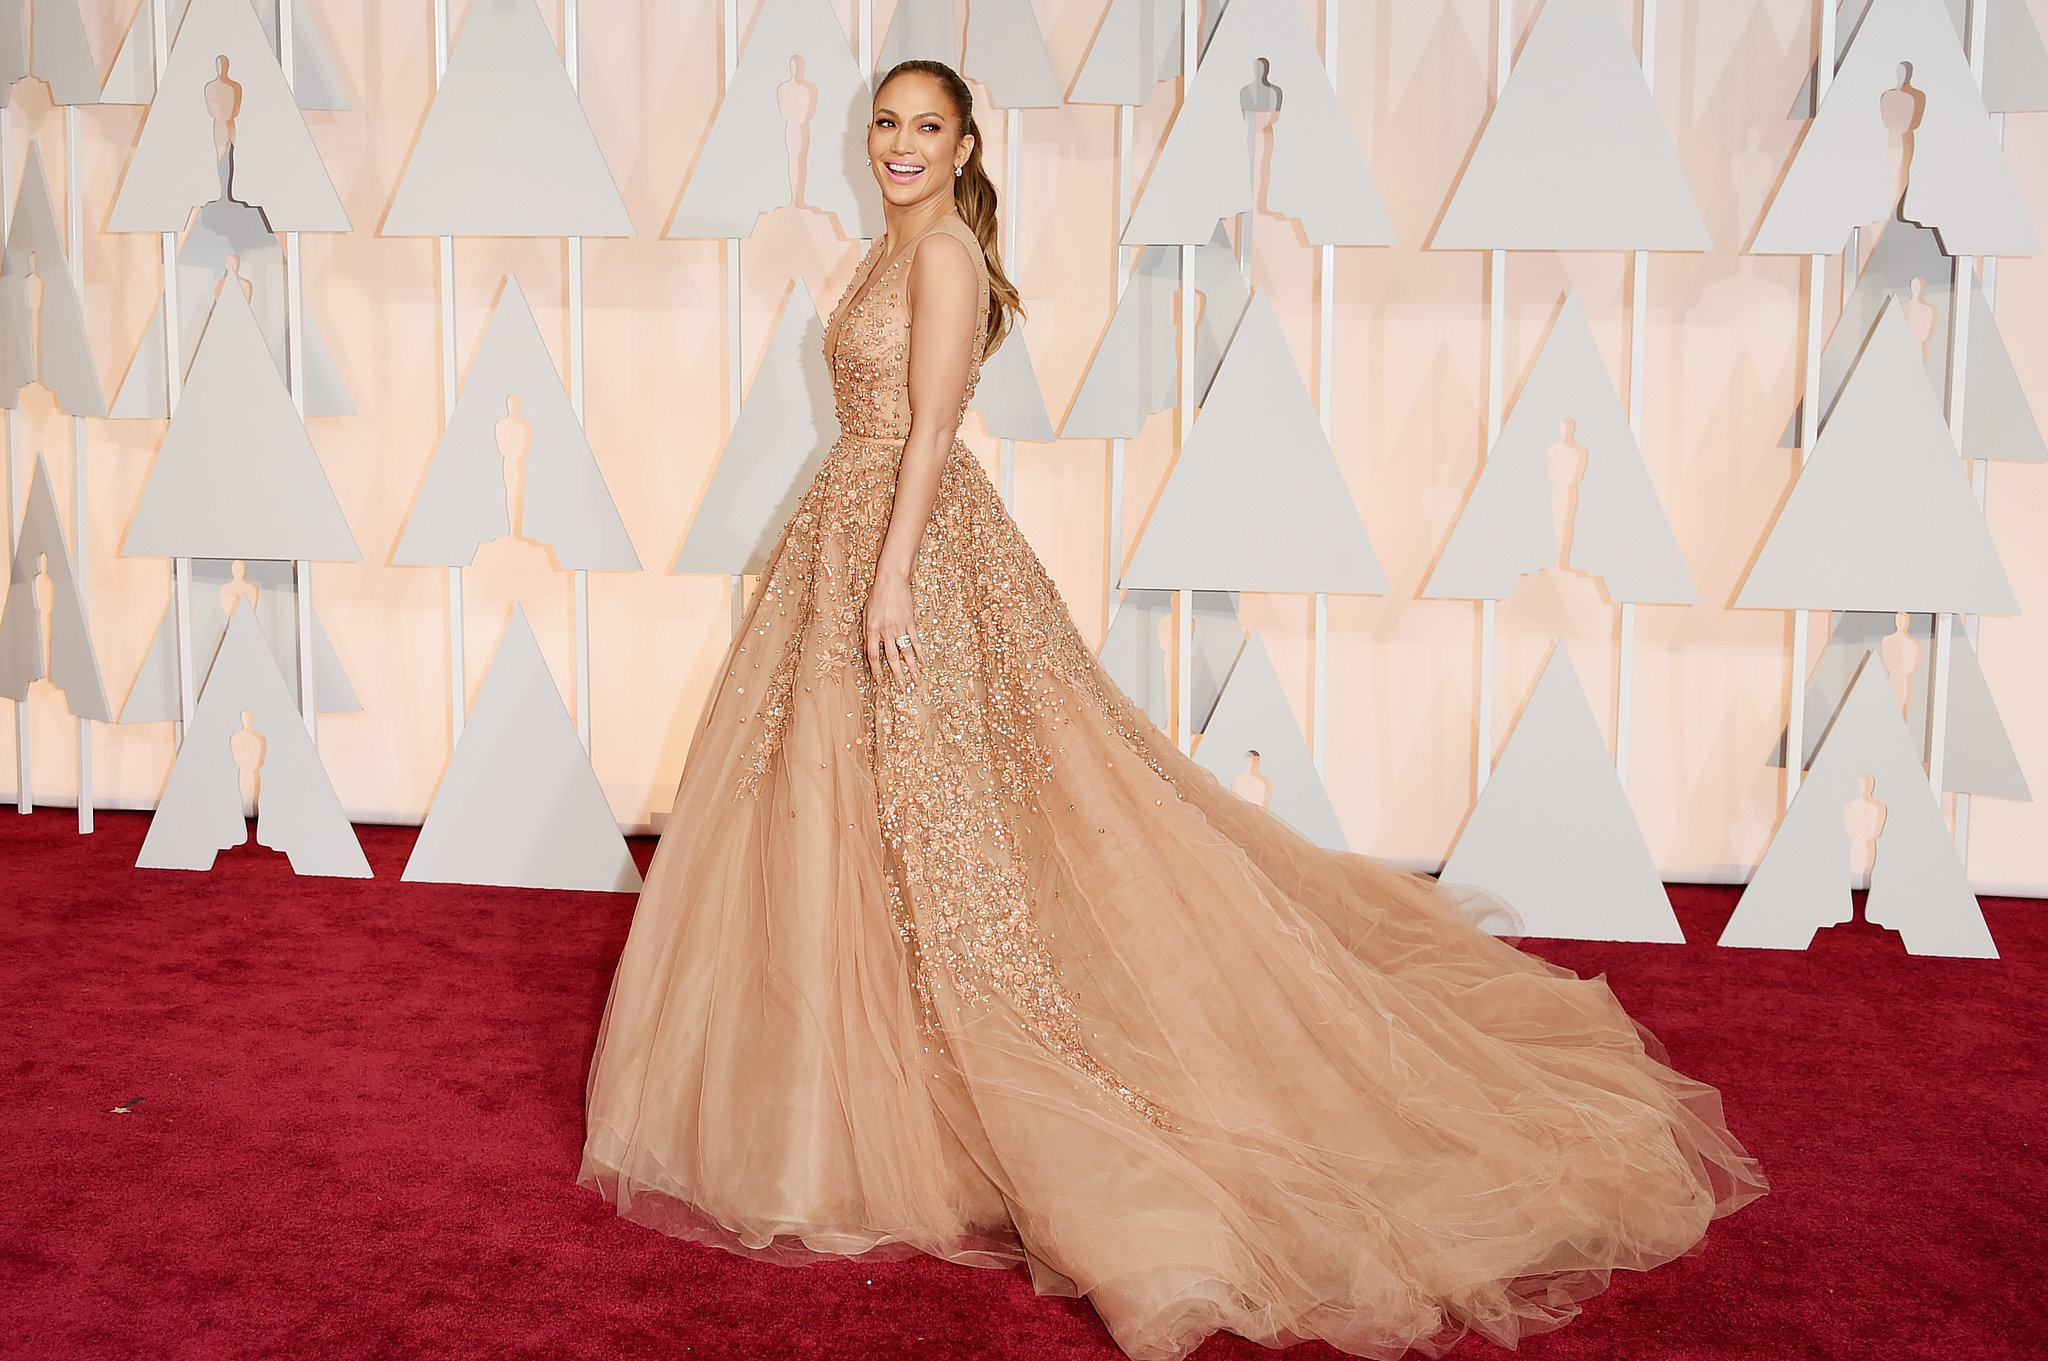 Jennifer Lopez in ELie Saab. Now forget about Elie Saab. Bravowh Jay Lowh. Different dress. Same face. Niiice